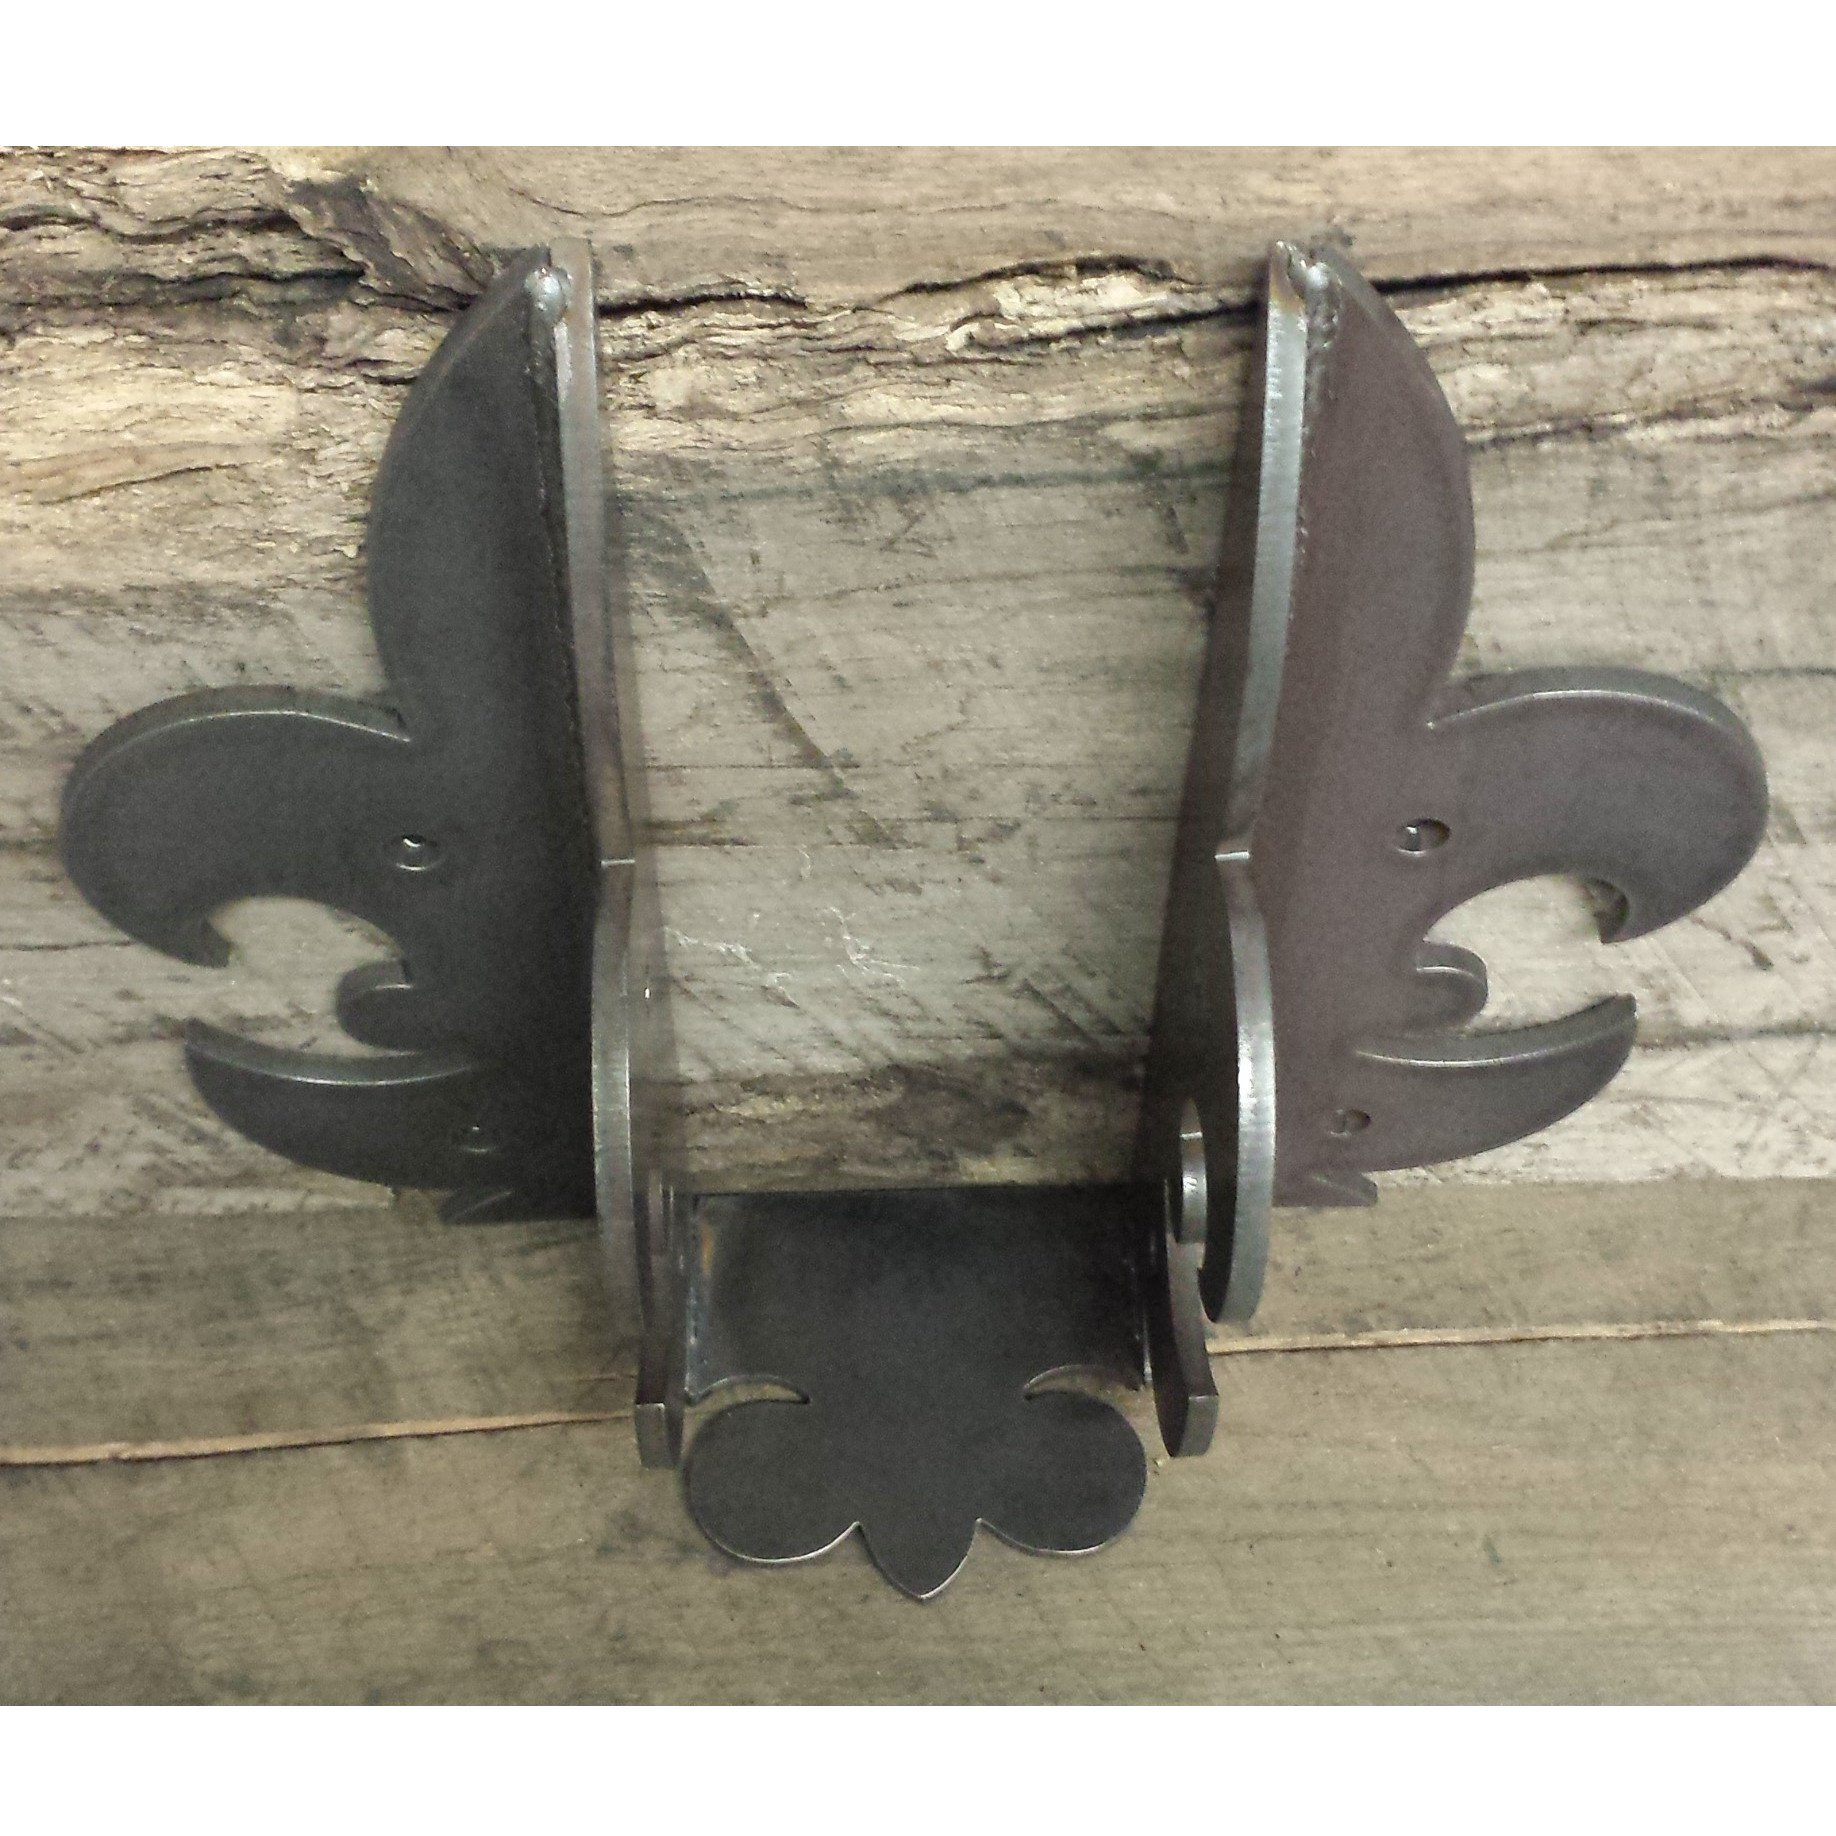 Custom Decorative Le Fleur Joist Hangers